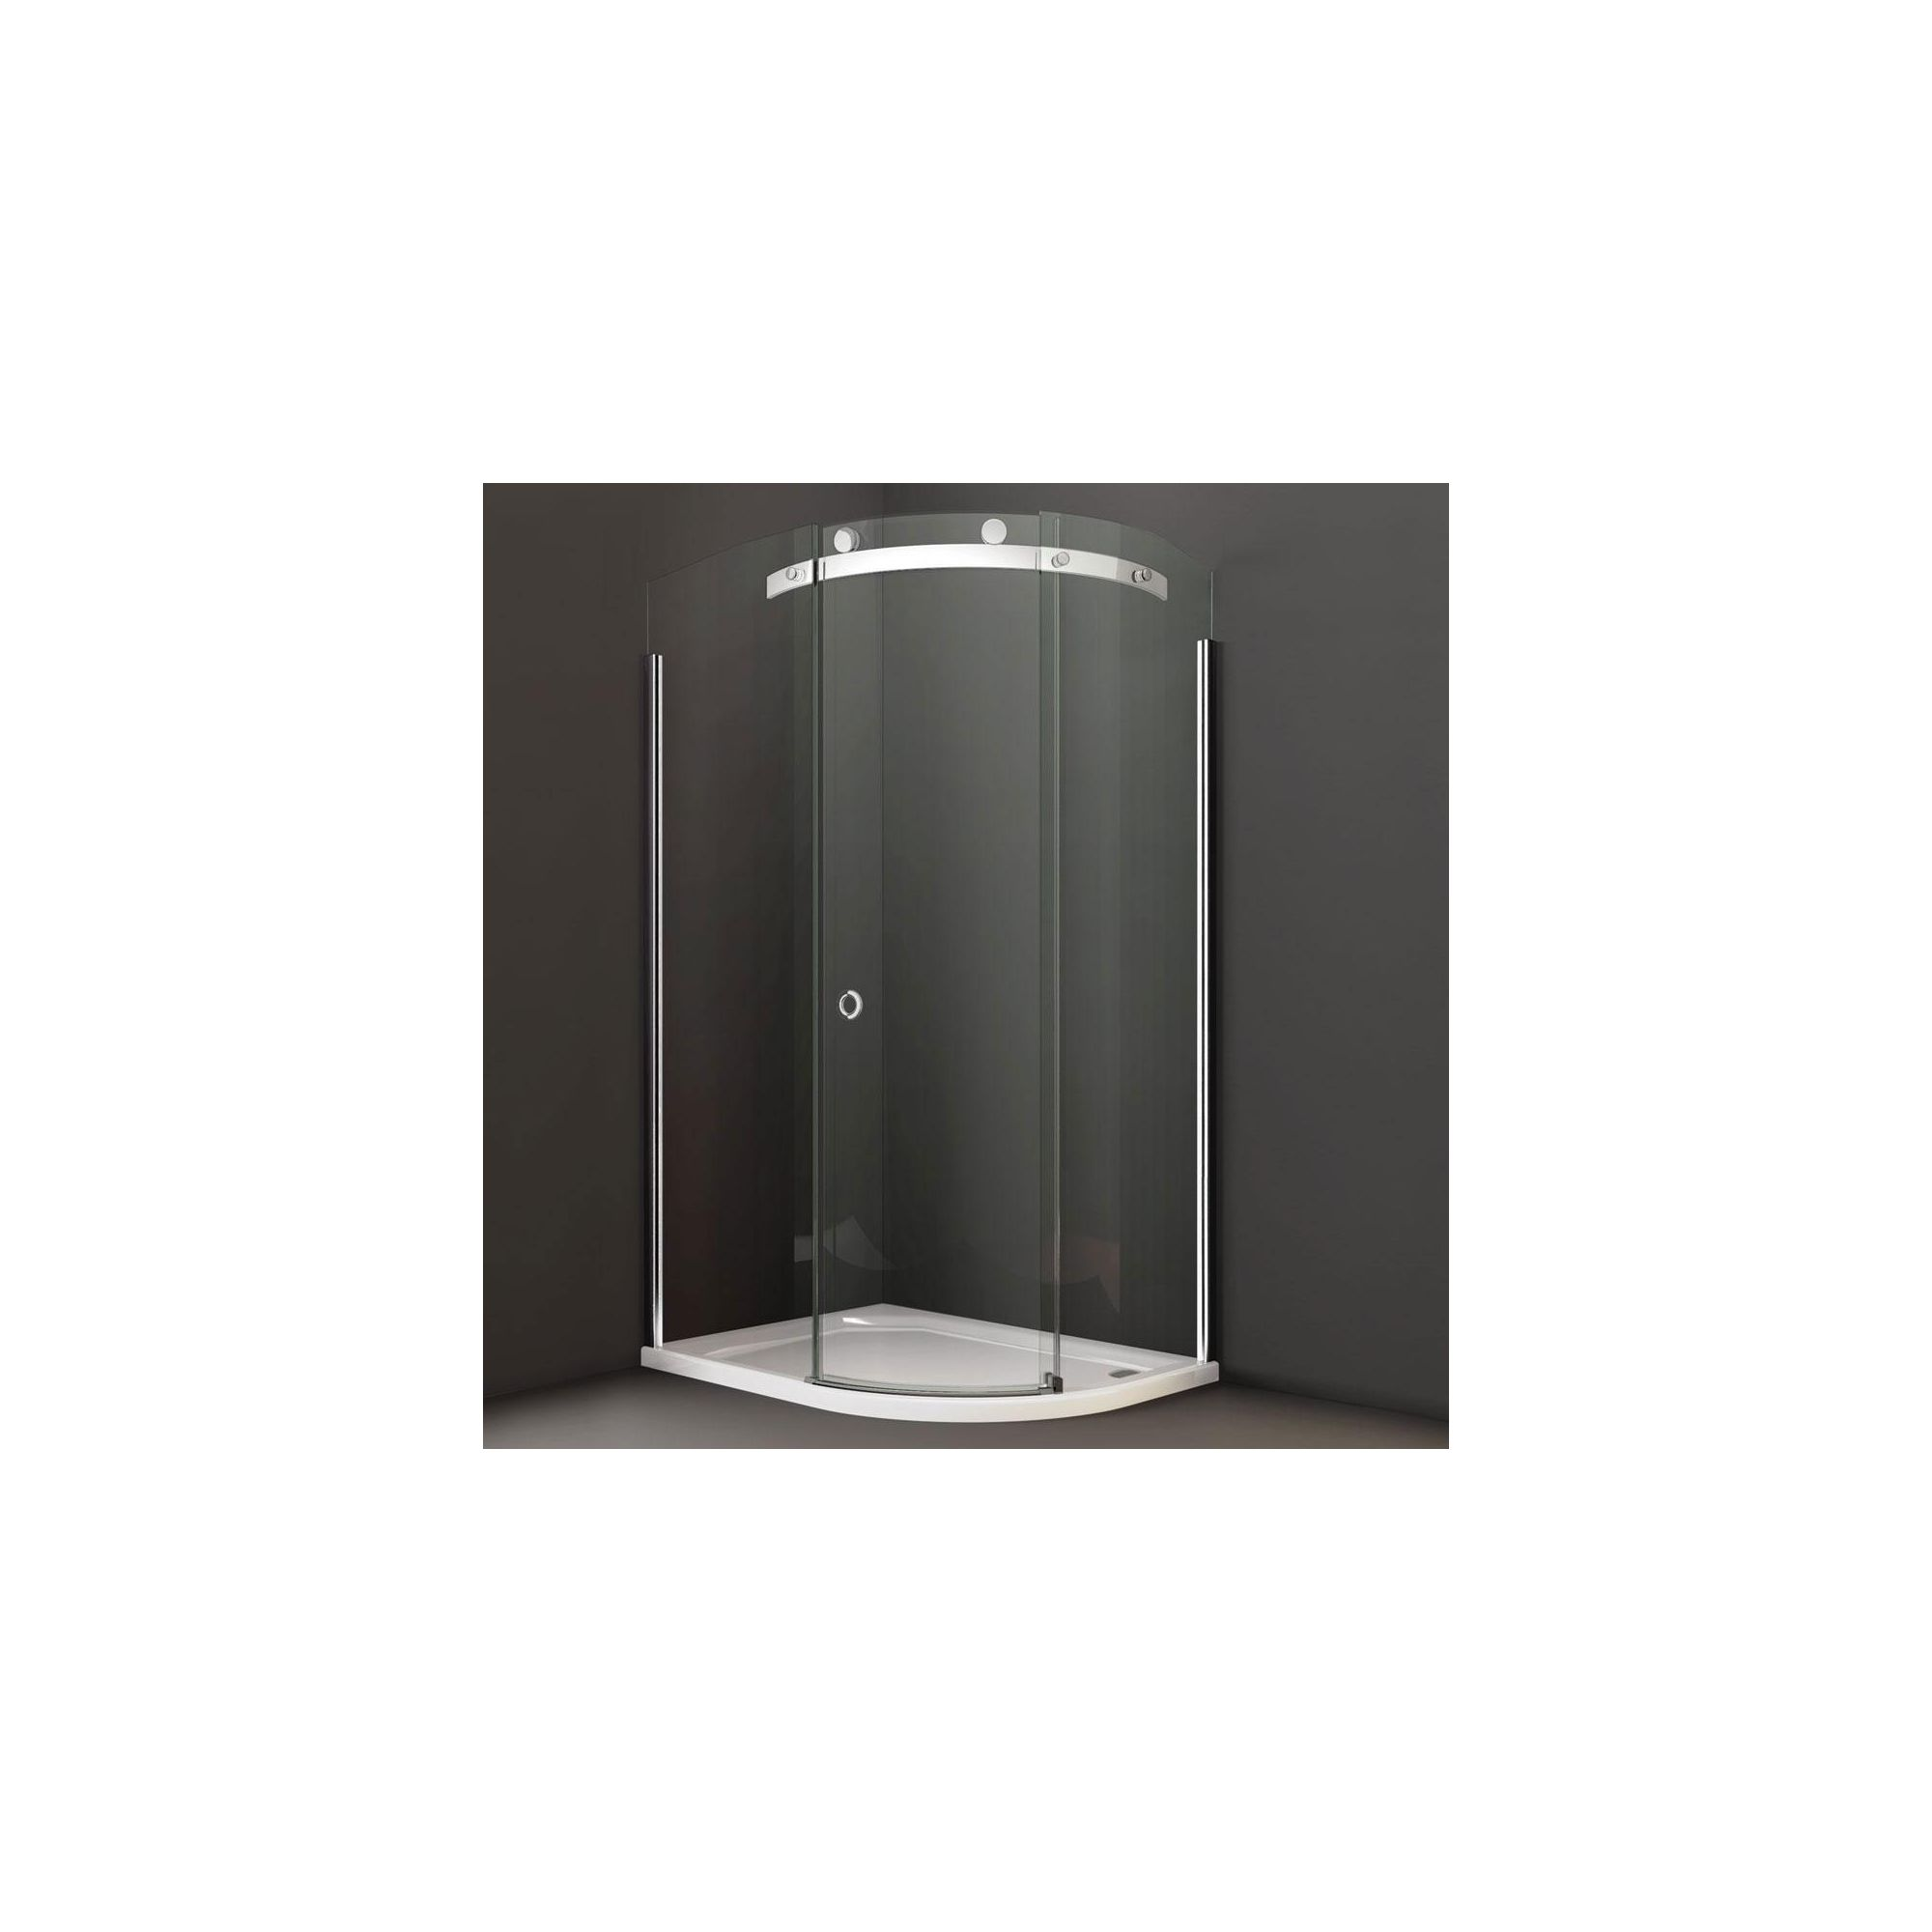 Merlyn Series 10 Offset Quadrant Shower Door, 1200mm x 900mm, 10mm Smoked Glass, Right Handed at Tesco Direct